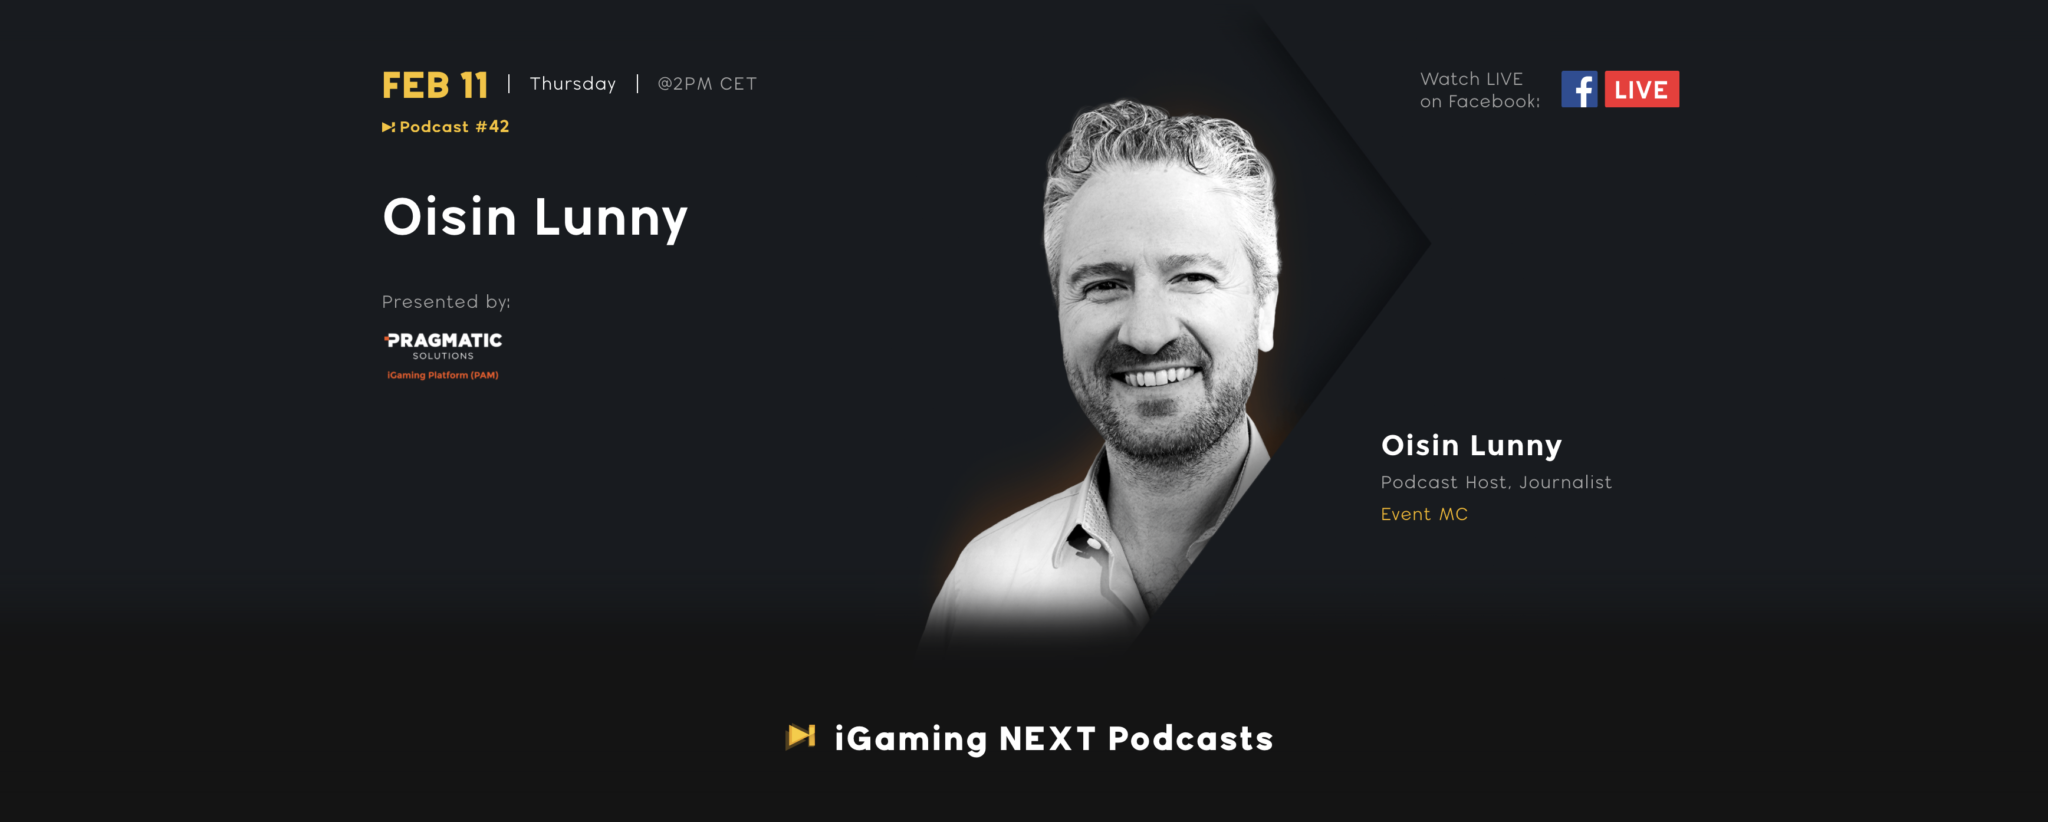 iGaming Next Podcast